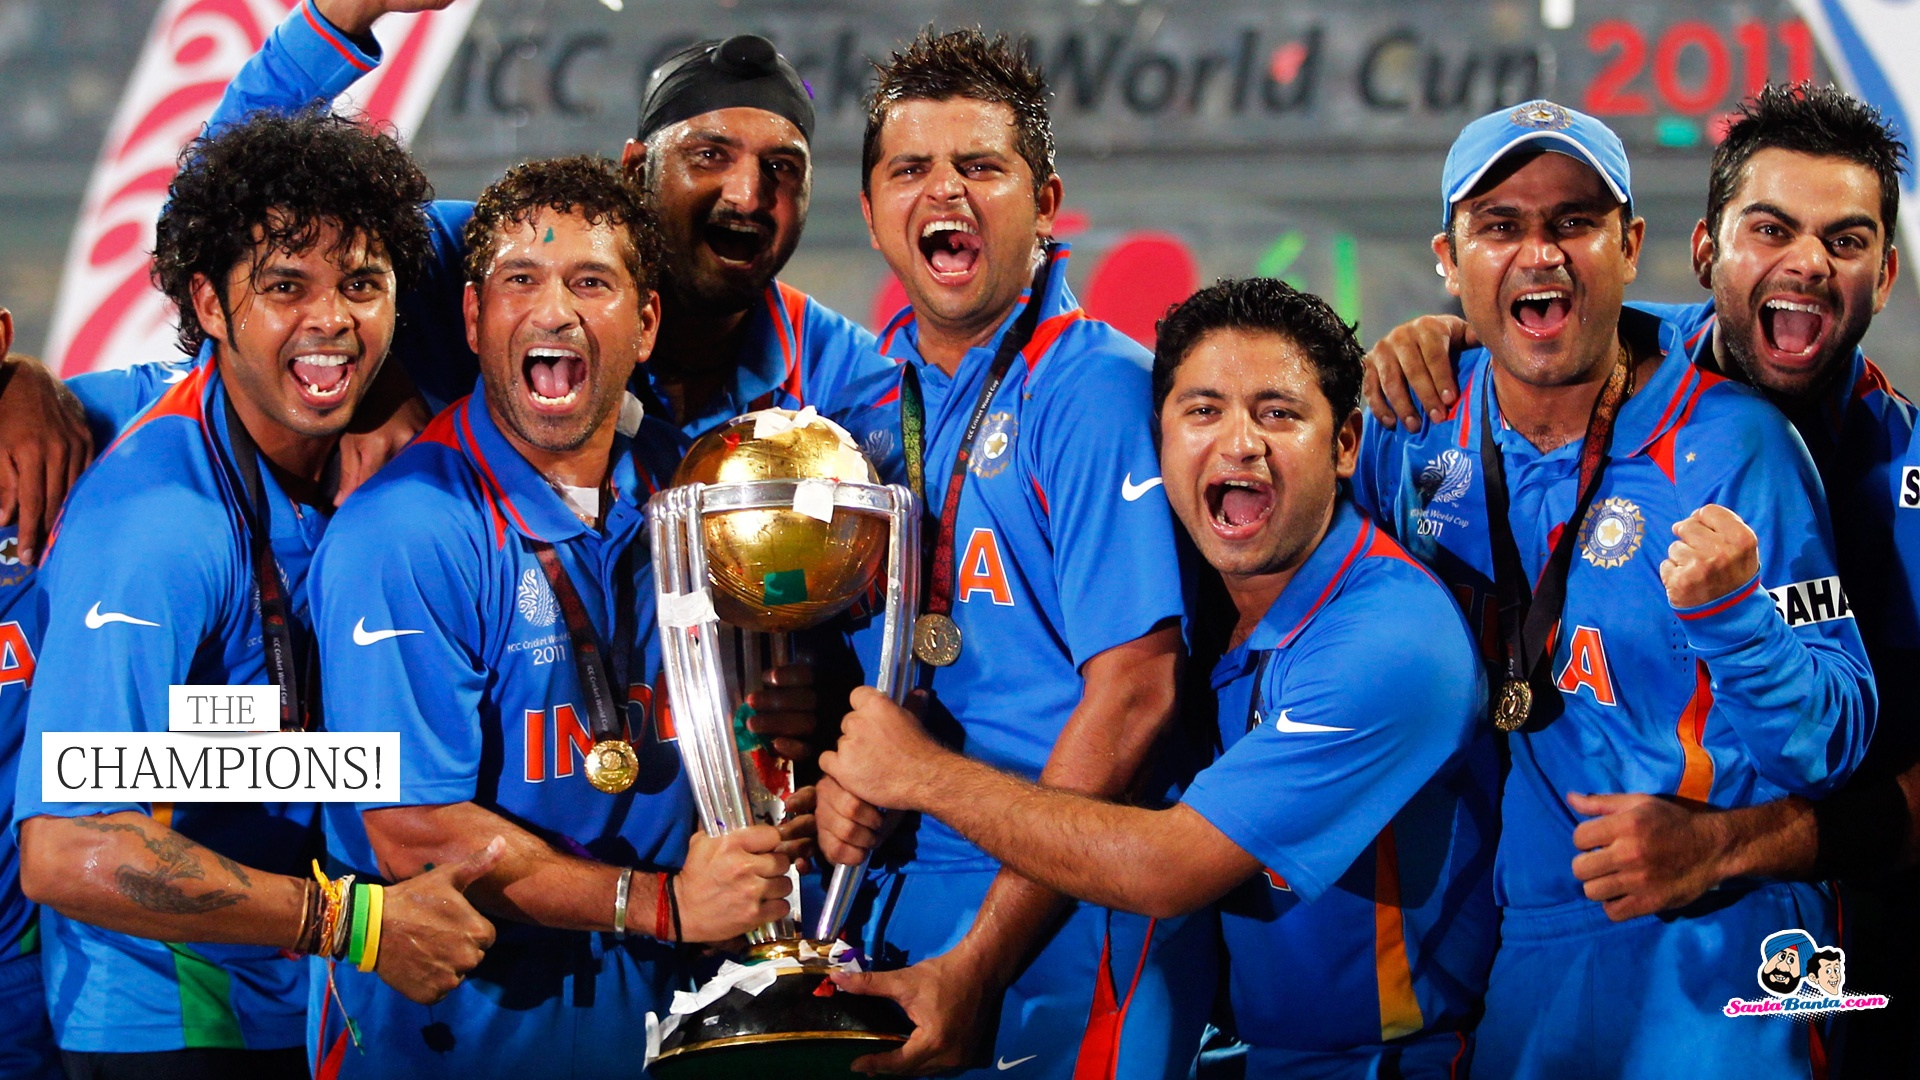 Team India 2011 World Cup Wallpapers in jpg format for ...